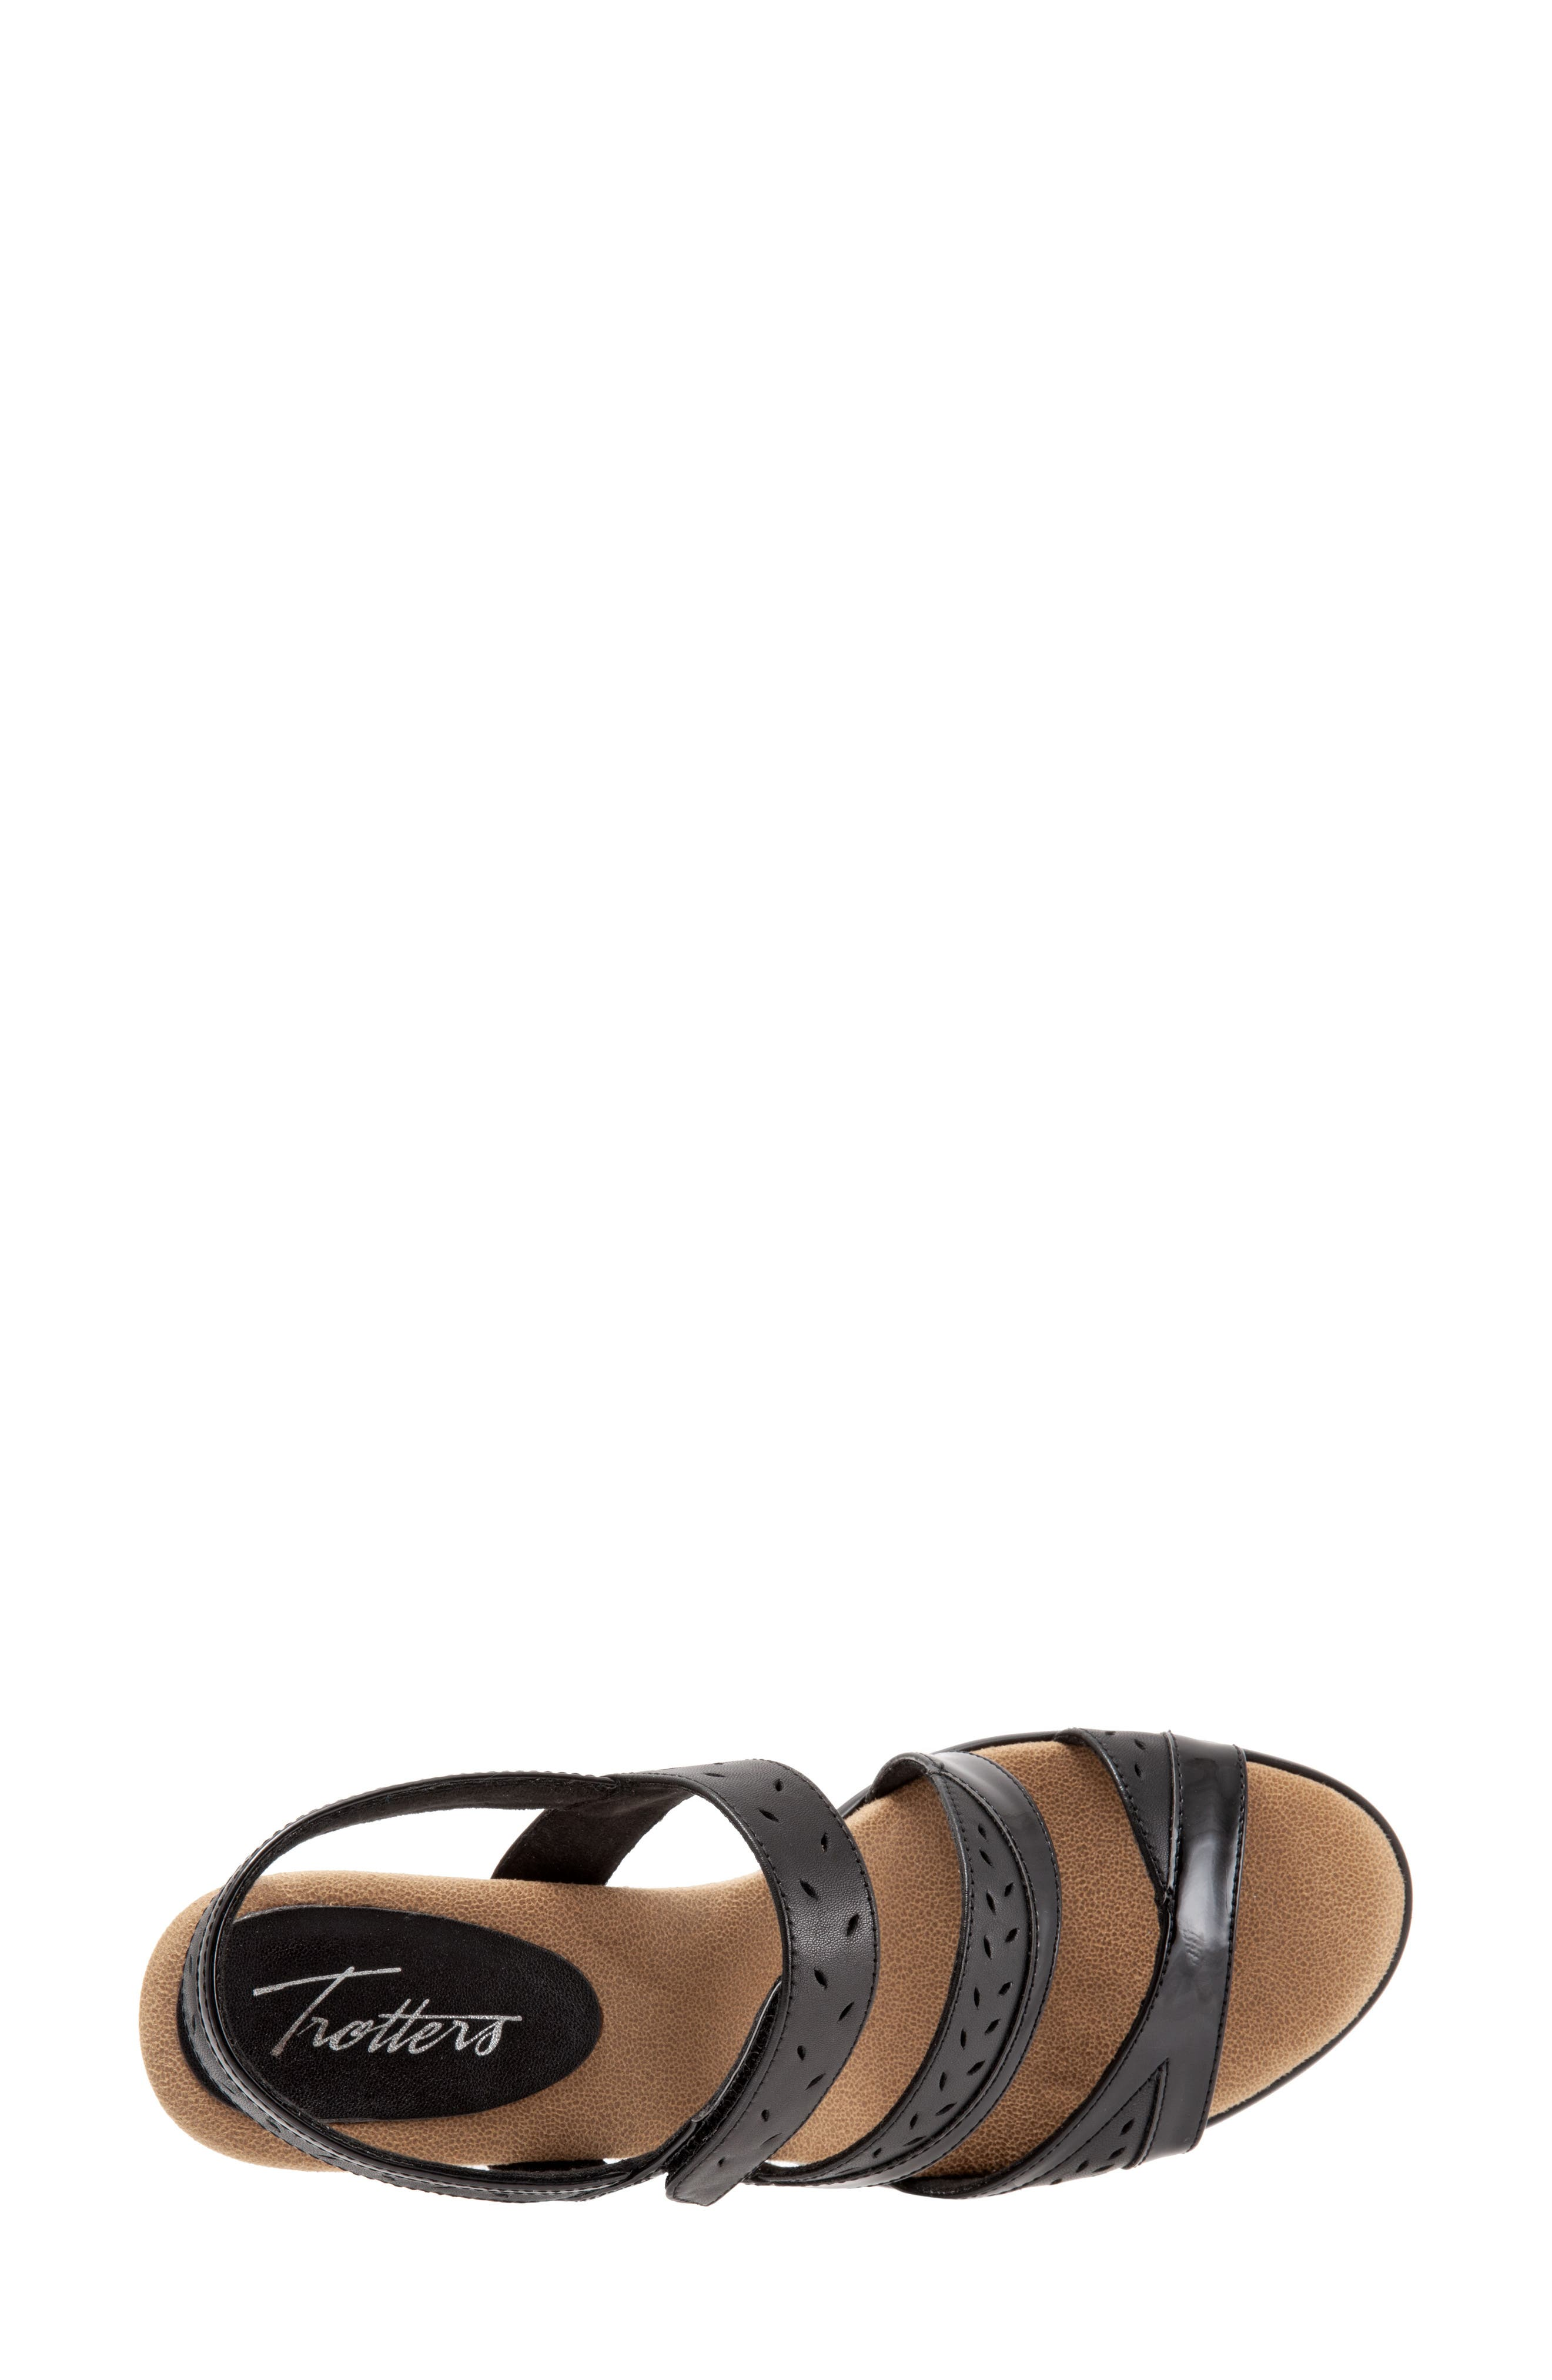 TROTTERS, Marvie Perforated Strappy Sandal, Alternate thumbnail 5, color, BLACK LEATHER